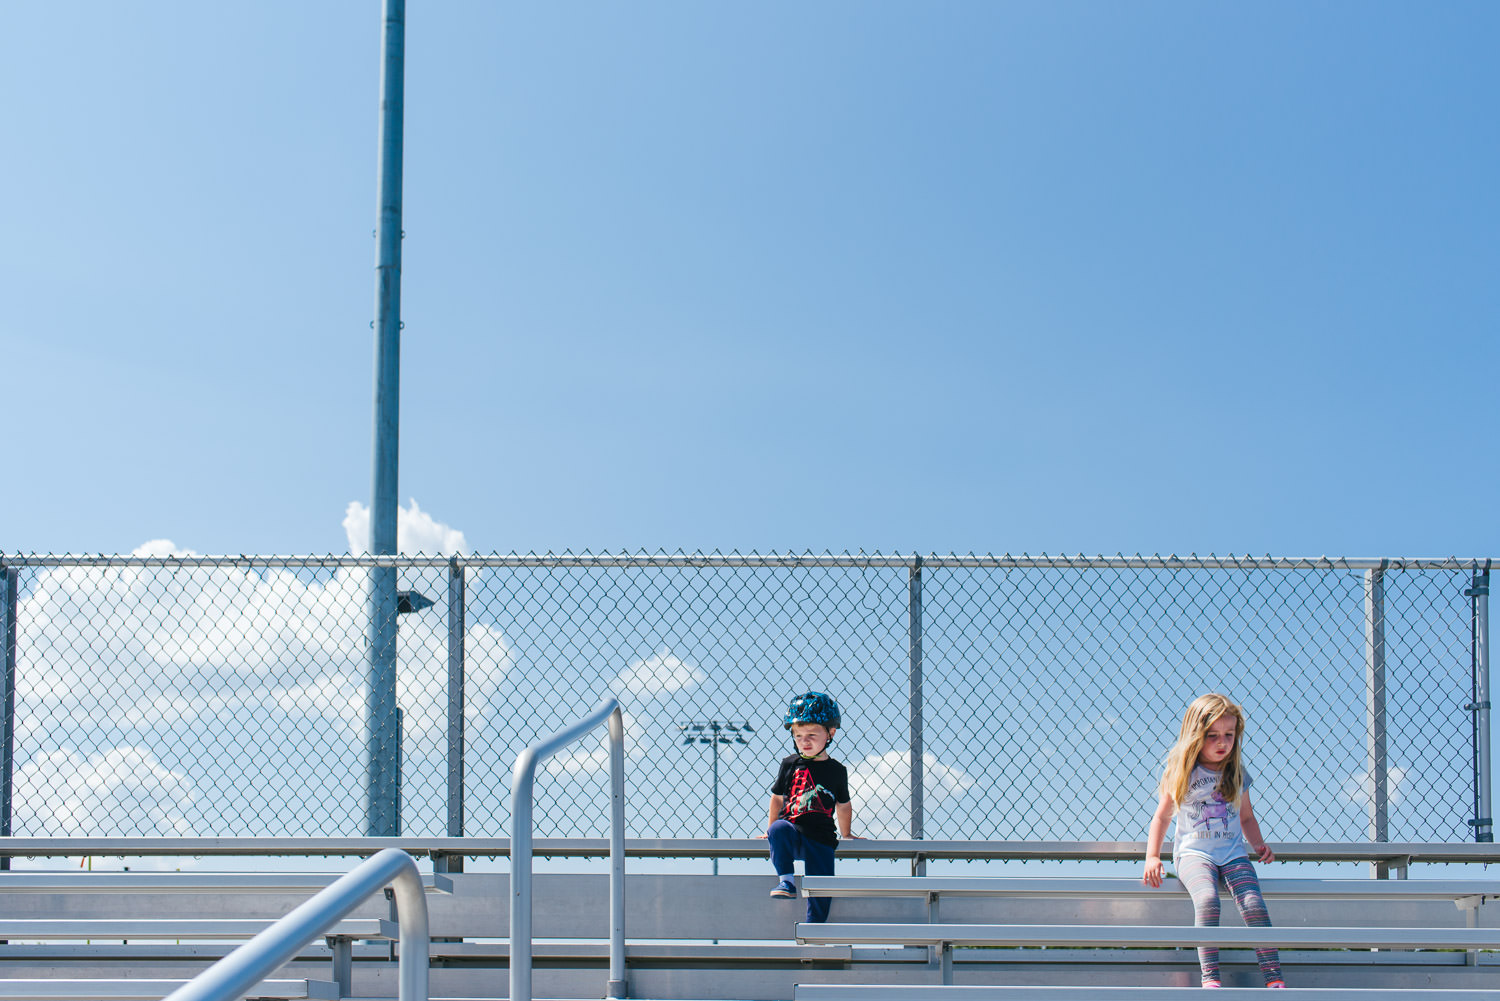 Kids sit at the top of a bank of bleachers.